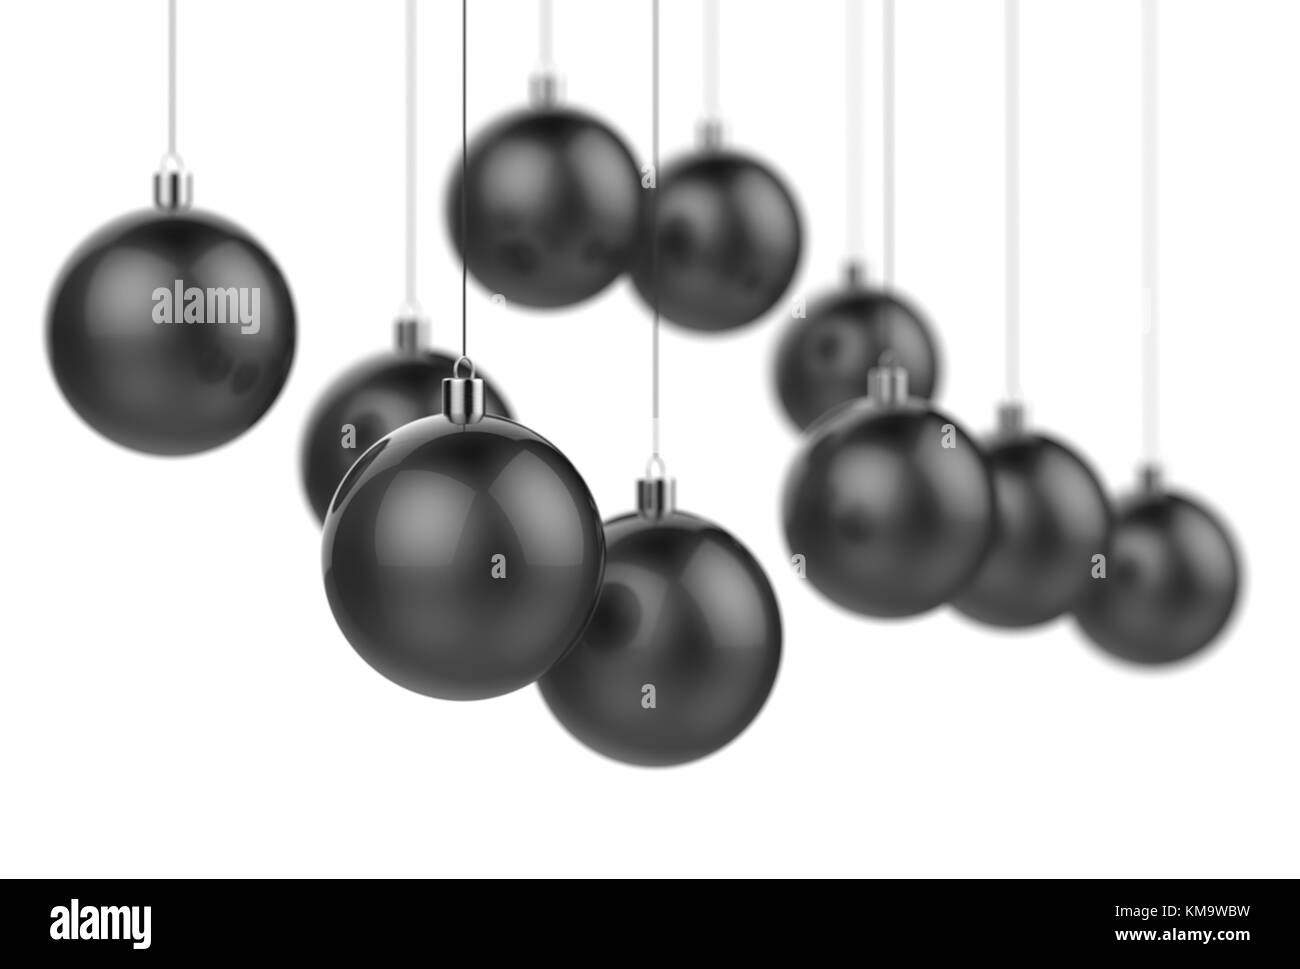 Black Christmas Balls.Black Christmas Balls Isolated On White Background With Selective